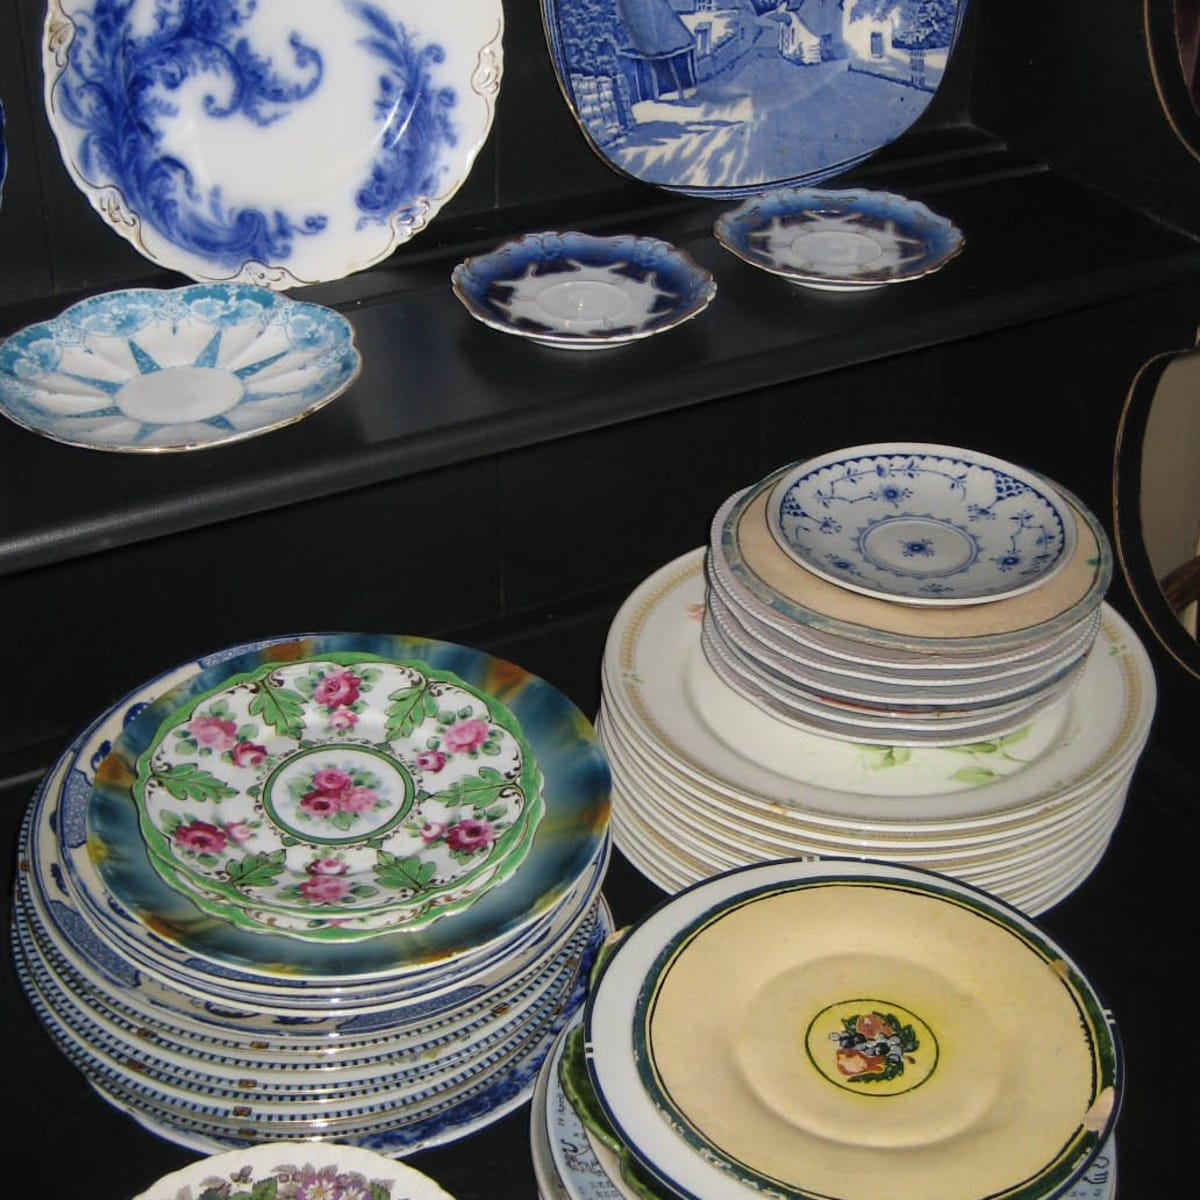 Collecting Antique And Vintage Plates And Dishware Hobbylark Games And Hobbies